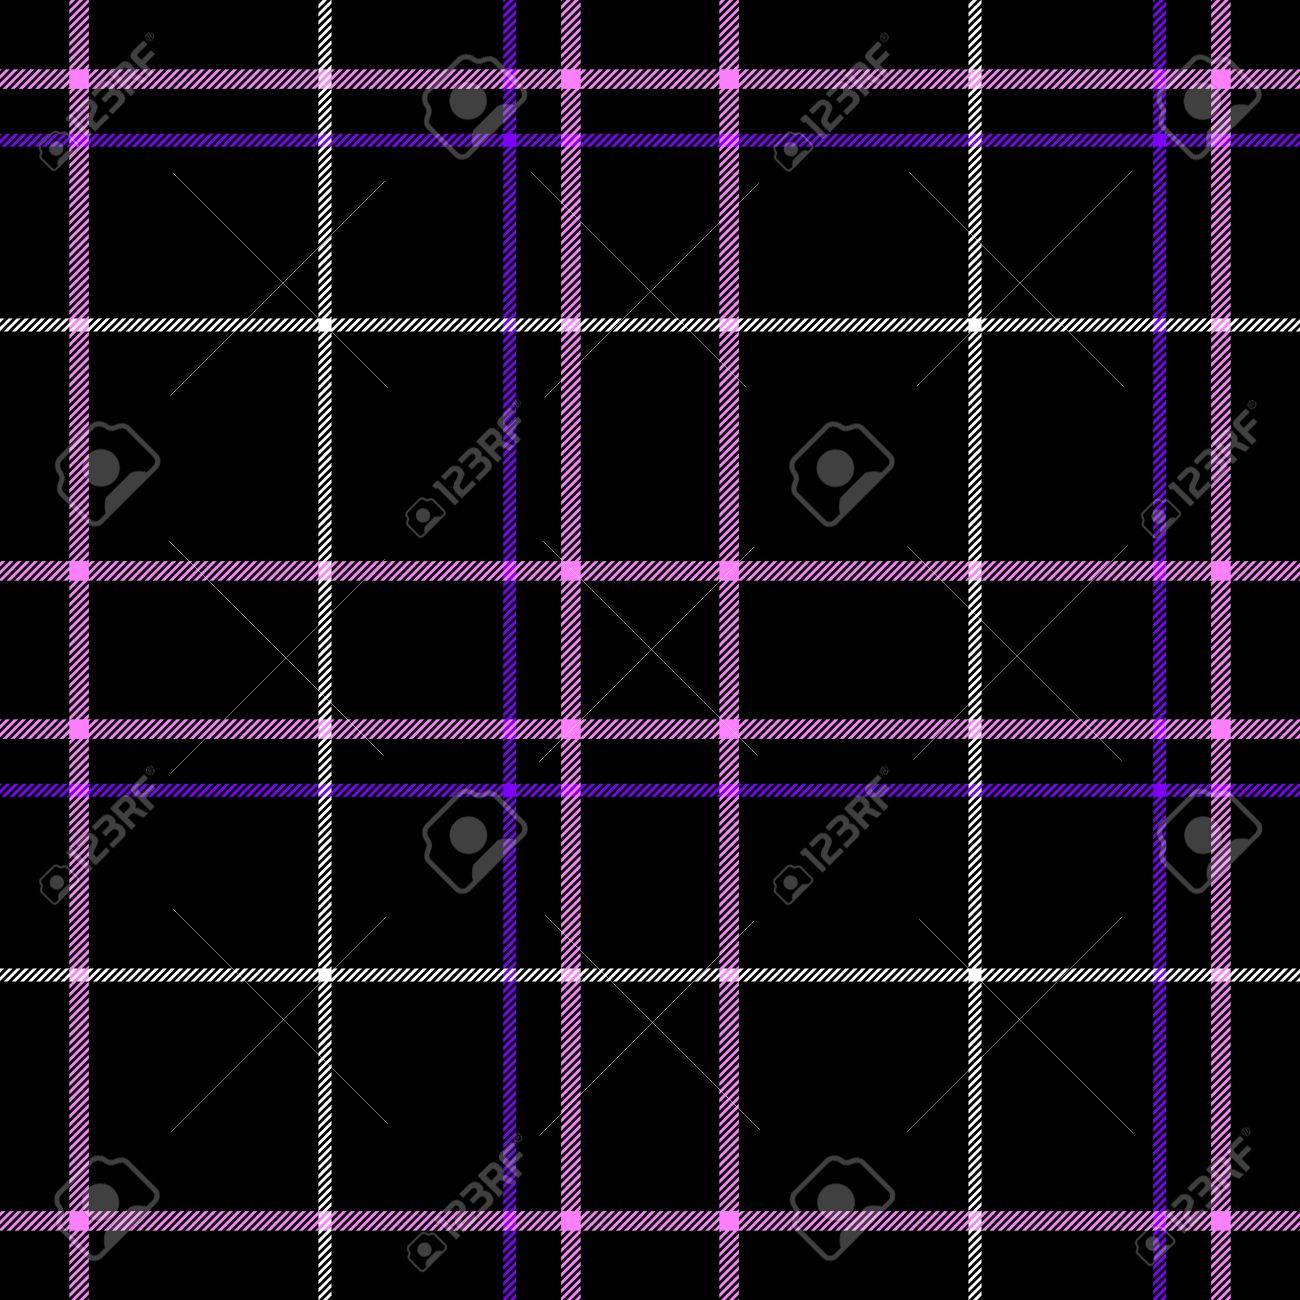 Black Check Diamond Tartan Plaid Fabric Seamless Pattern Texture